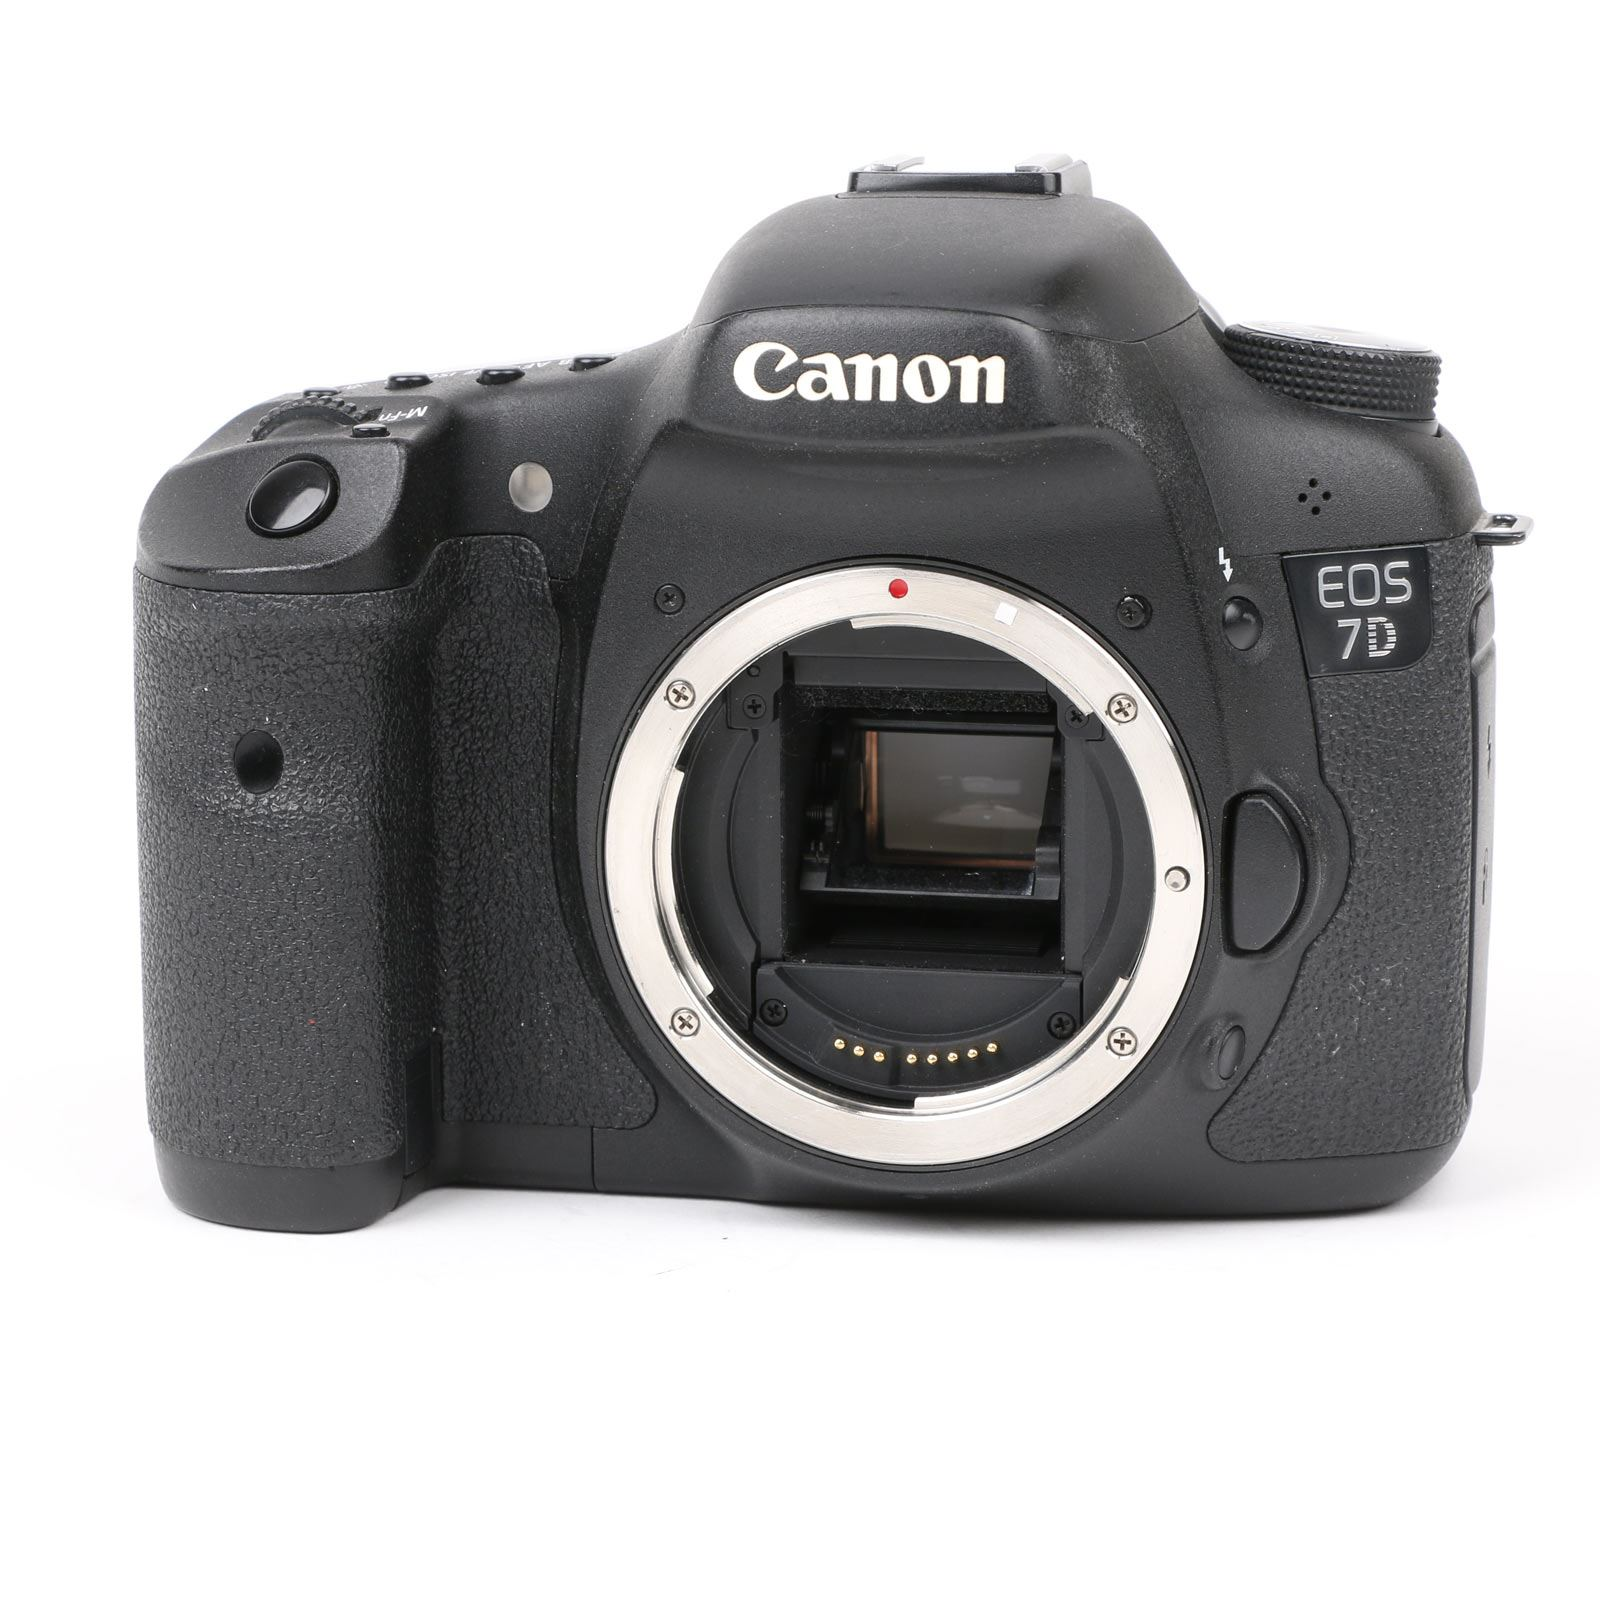 Image of Used Canon EOS 7D Digital SLR Camera Body